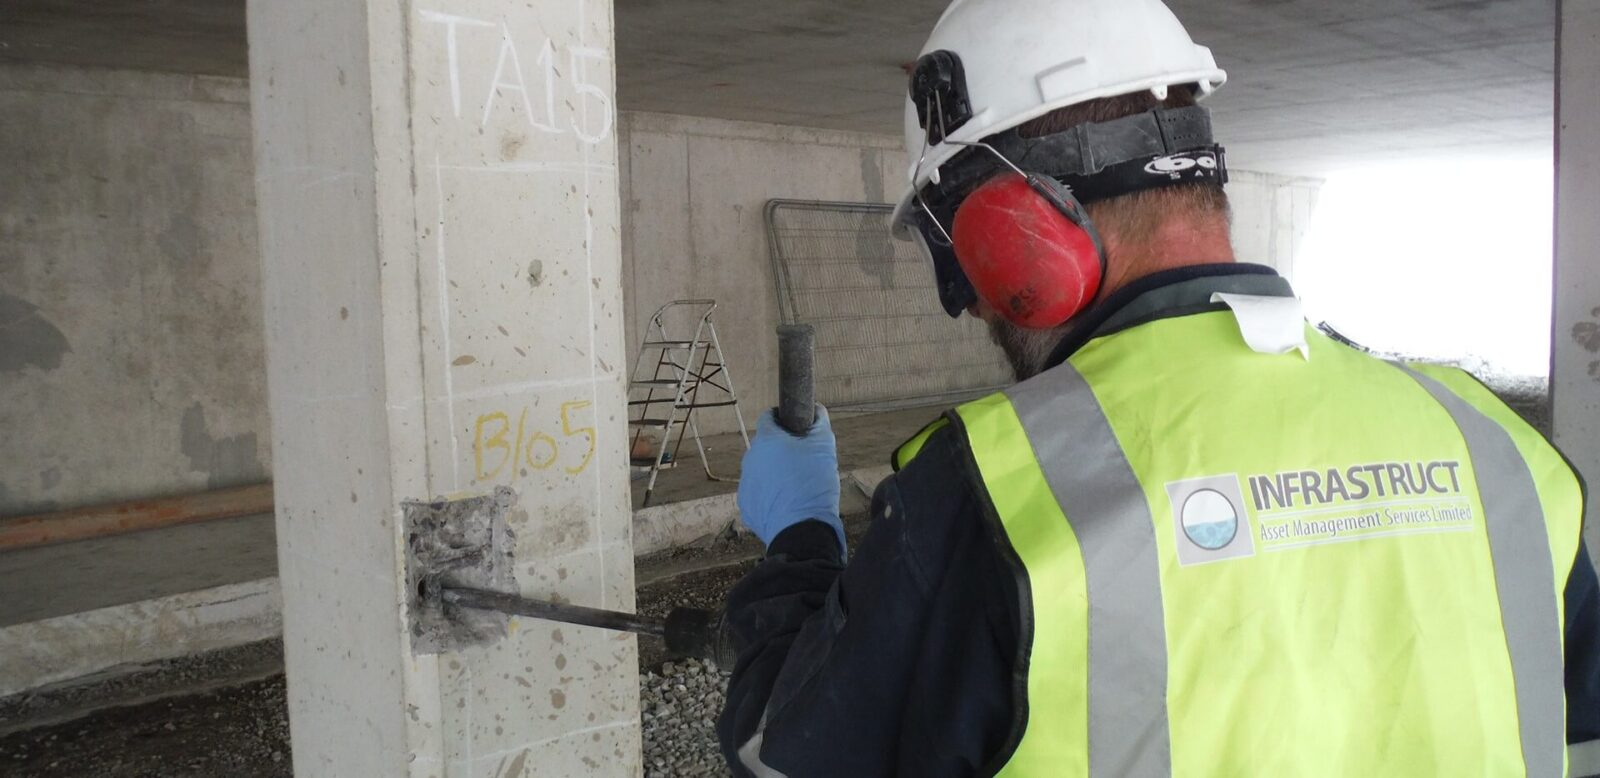 Concrete Testing Service - Infrastruct